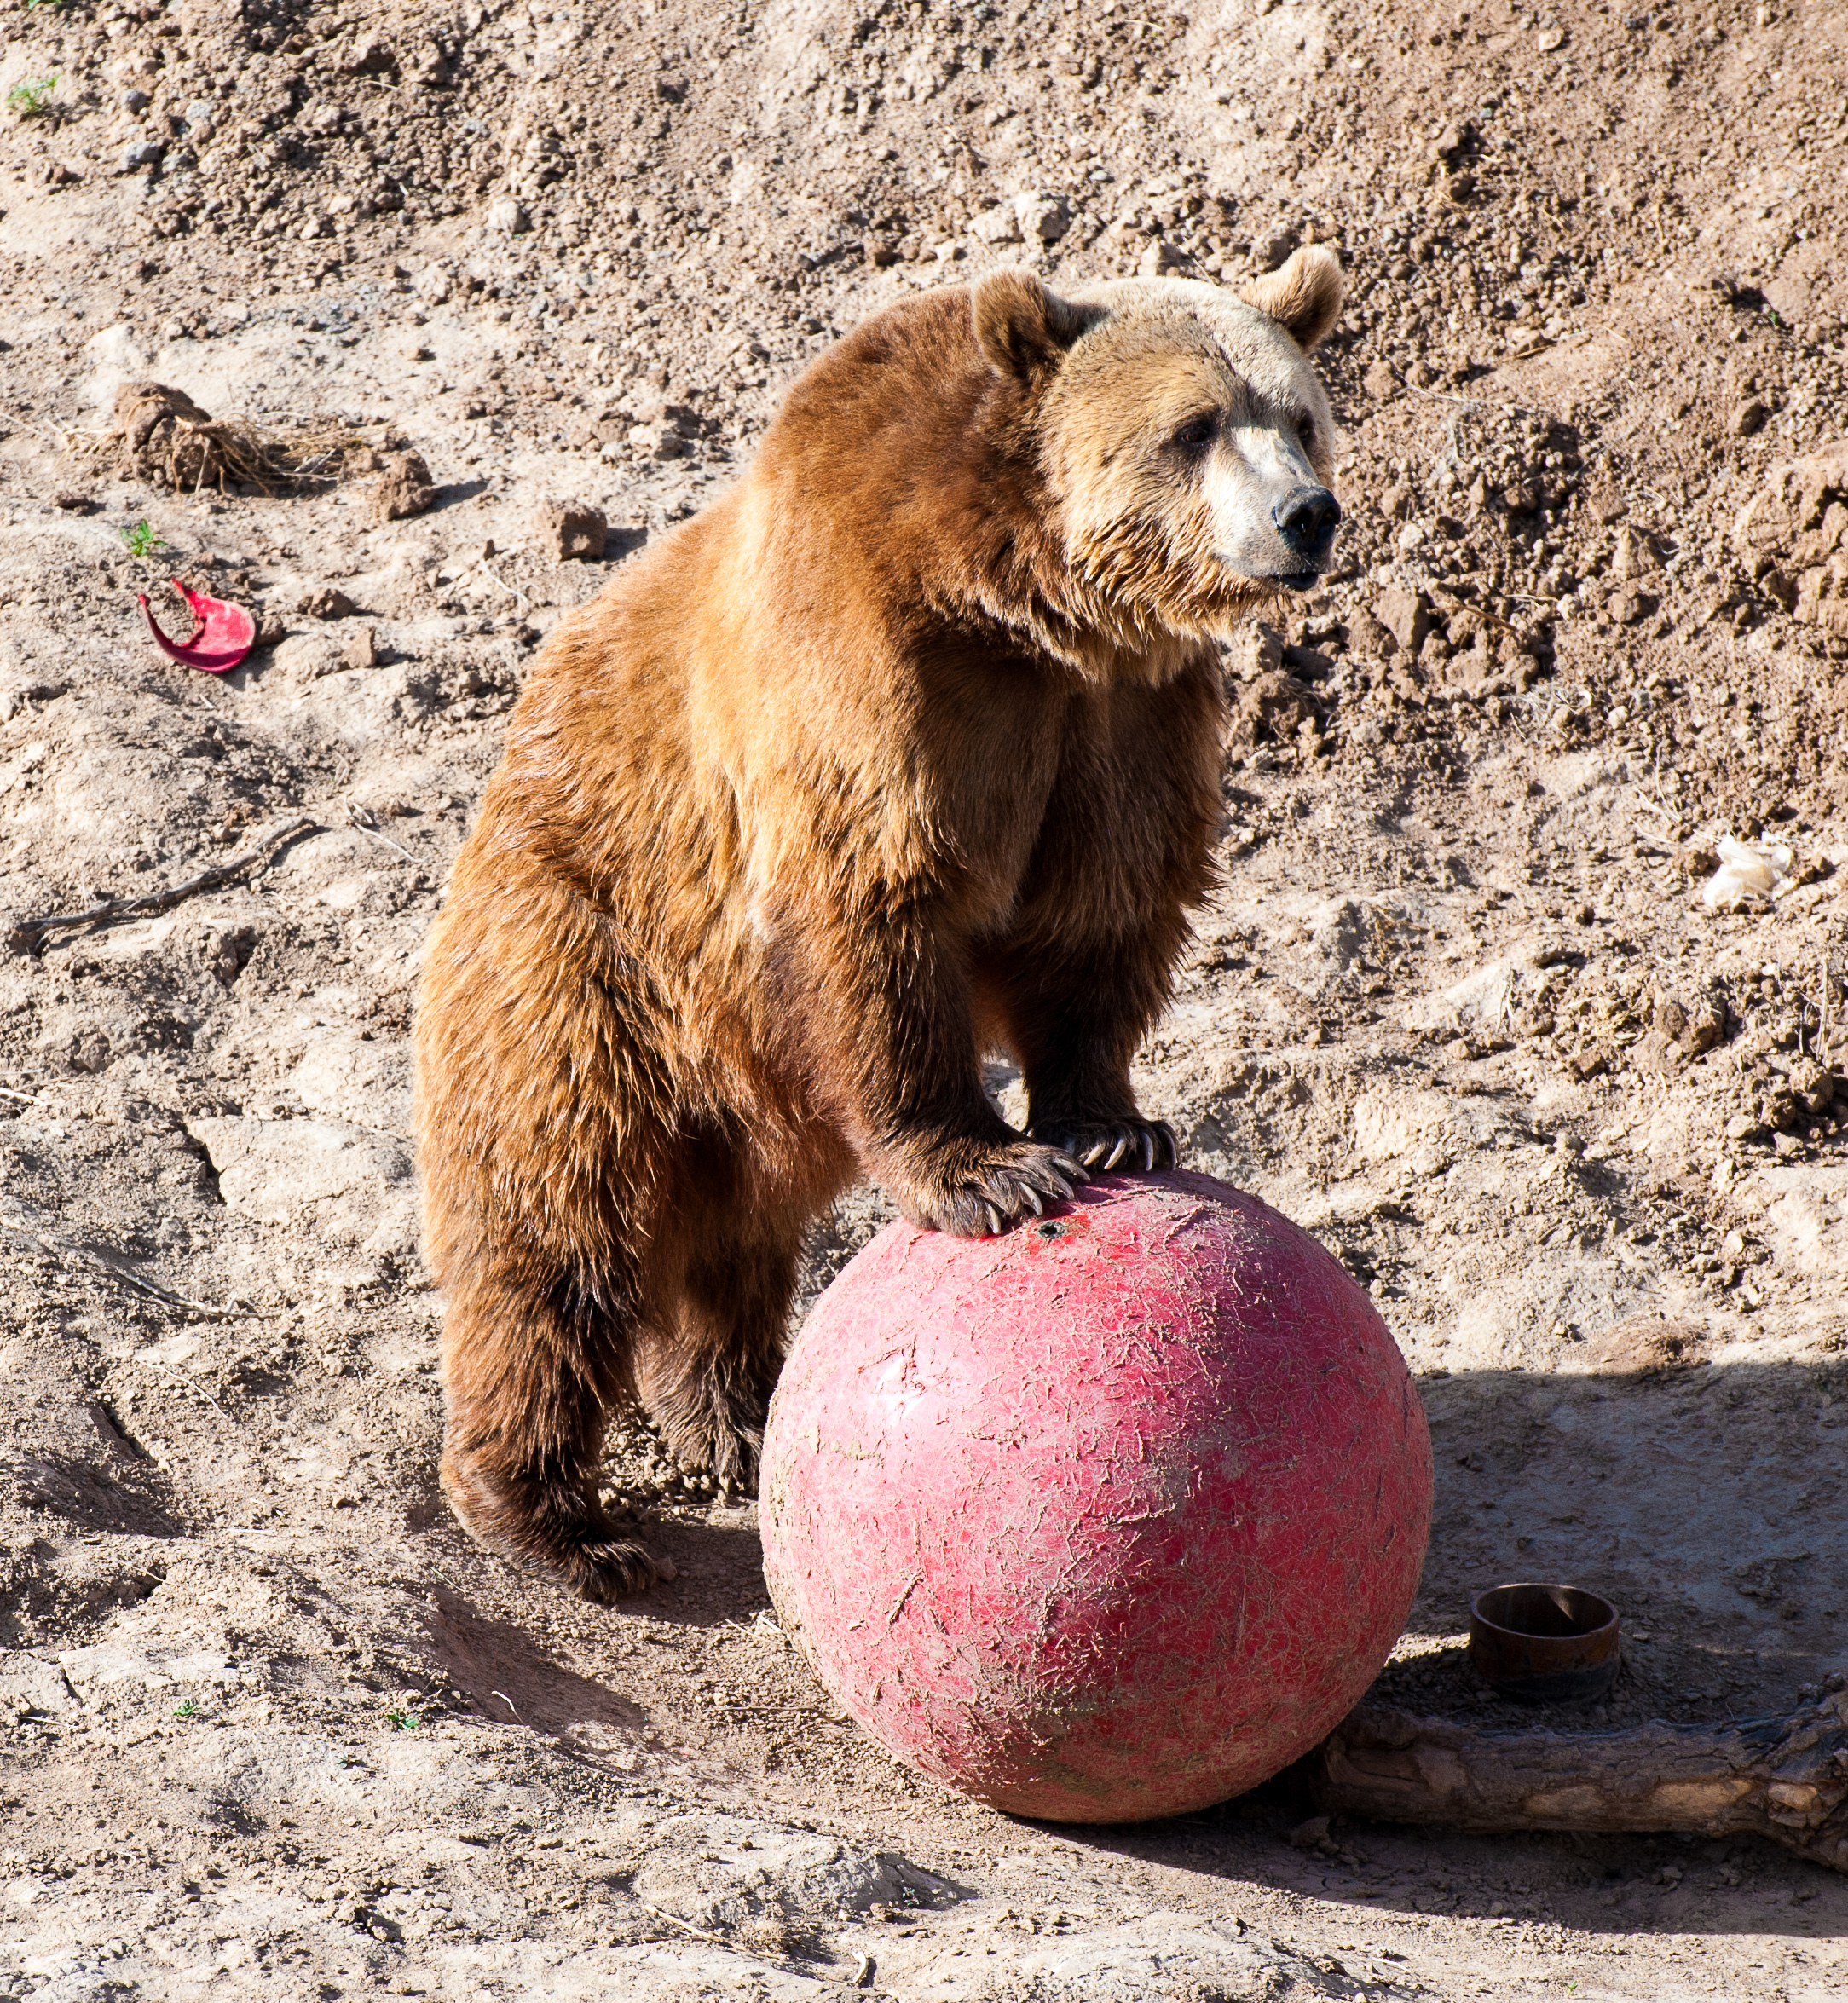 Description Grizzly bear at Wild Animal Sanctuary.jpg